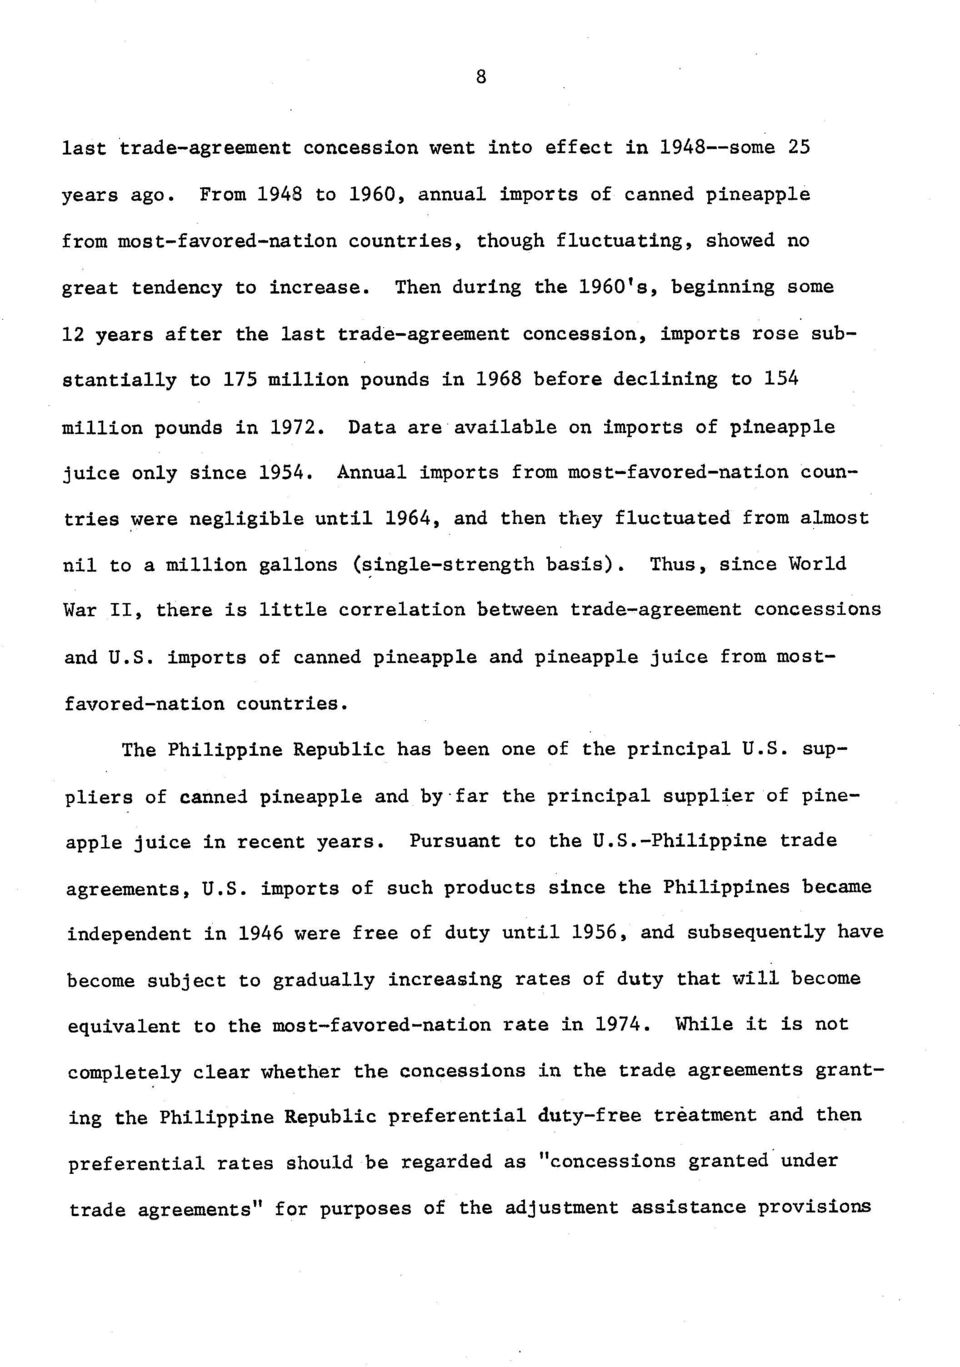 Then during the 196's, beginning some 12 years after the last trade-agreement concession, imports rose substantially to 175 million pounds in 1968 before declining to 154 million pounds in 1972.